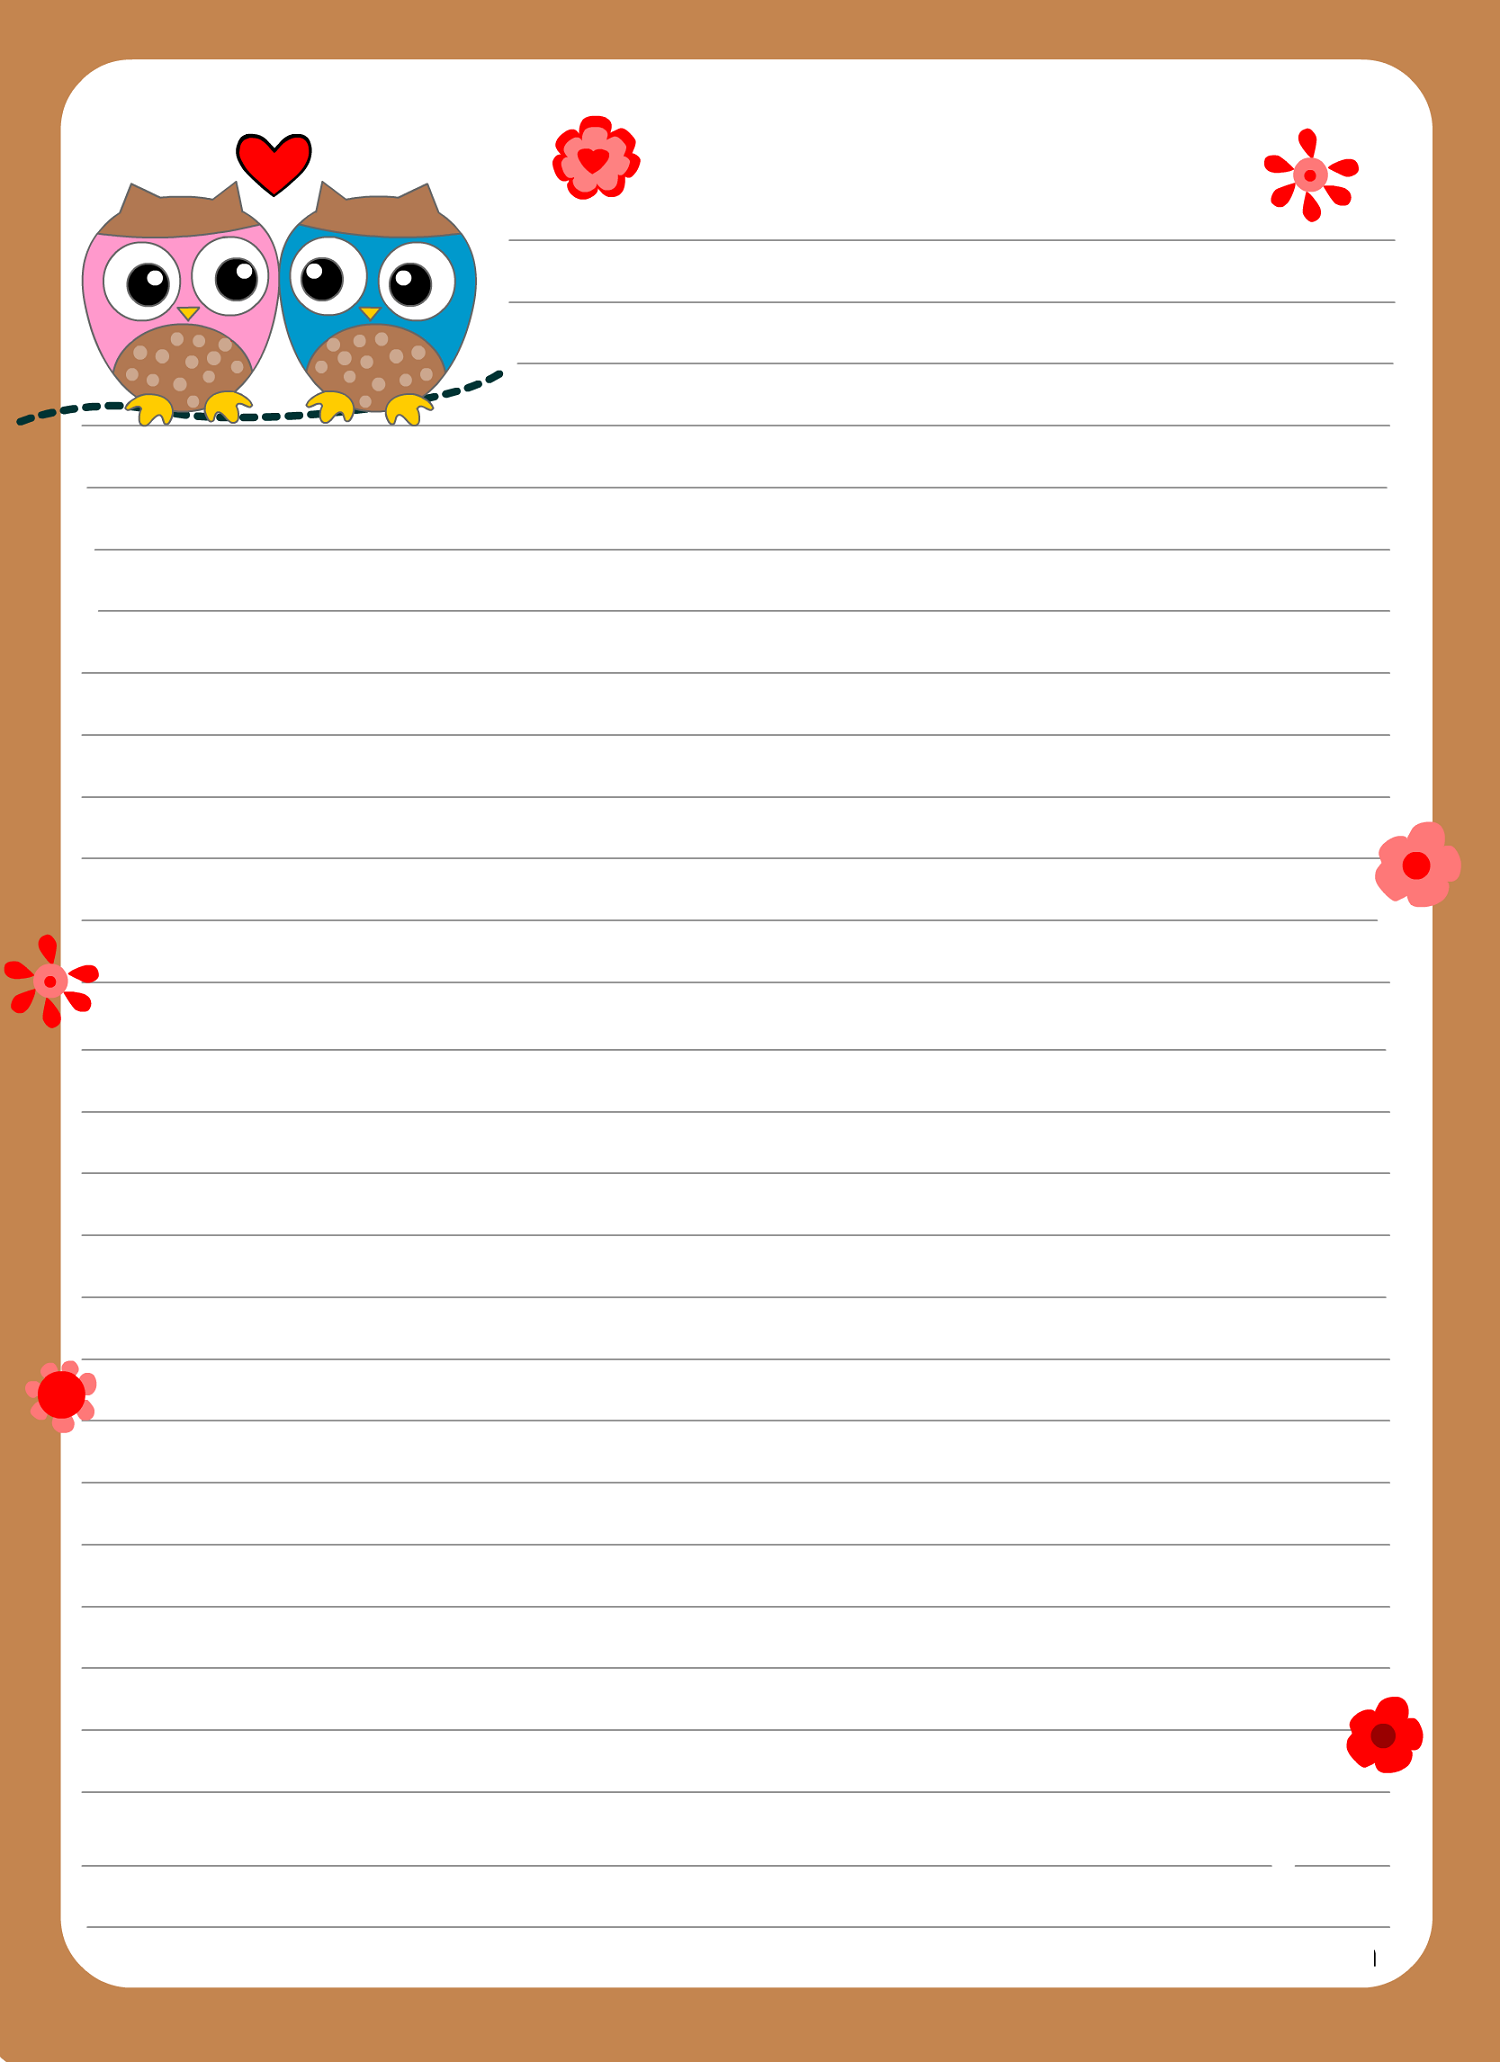 Lined Paper For Writing For Cute Writing Paper  Dear Joya  Fancy